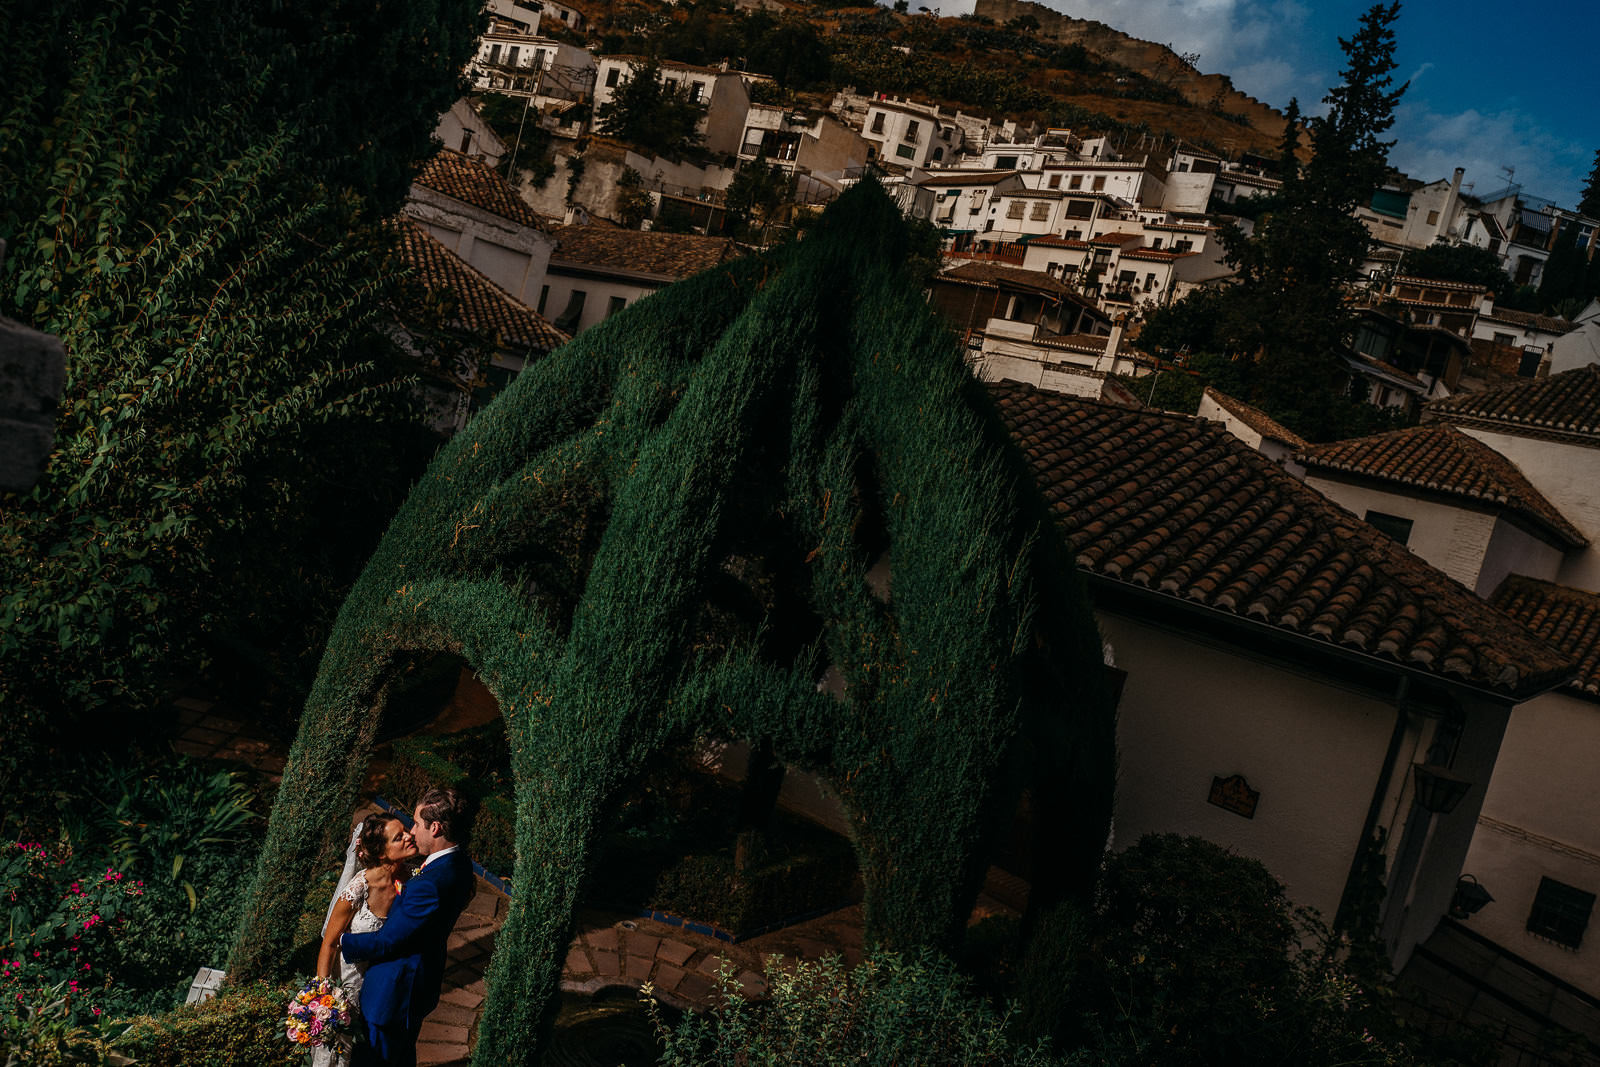 granada_destination_wedding_spain_050